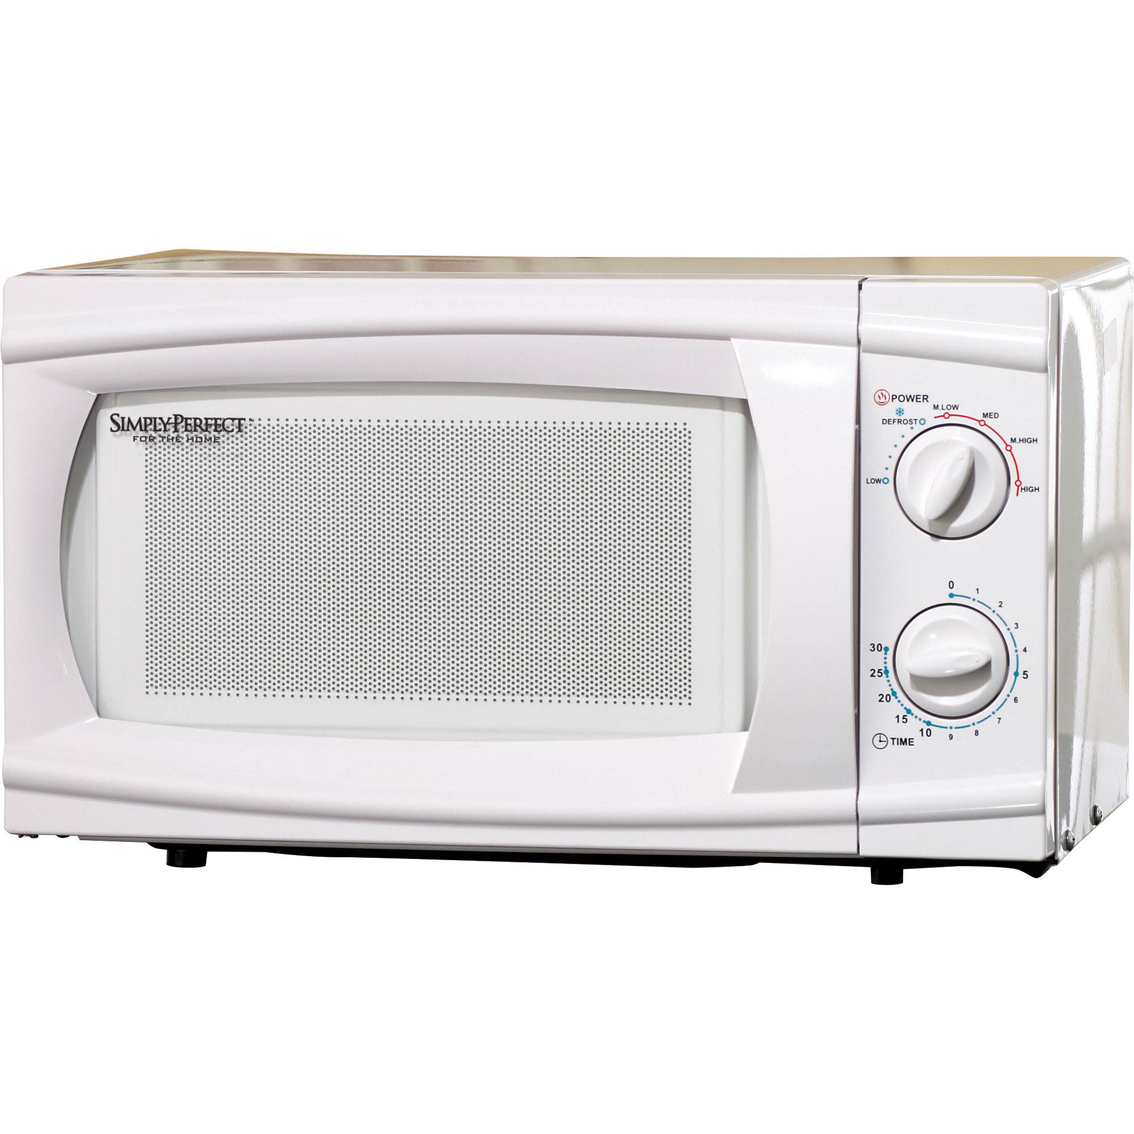 Simply Perfect 0 6 Cu Ft 600w Dial